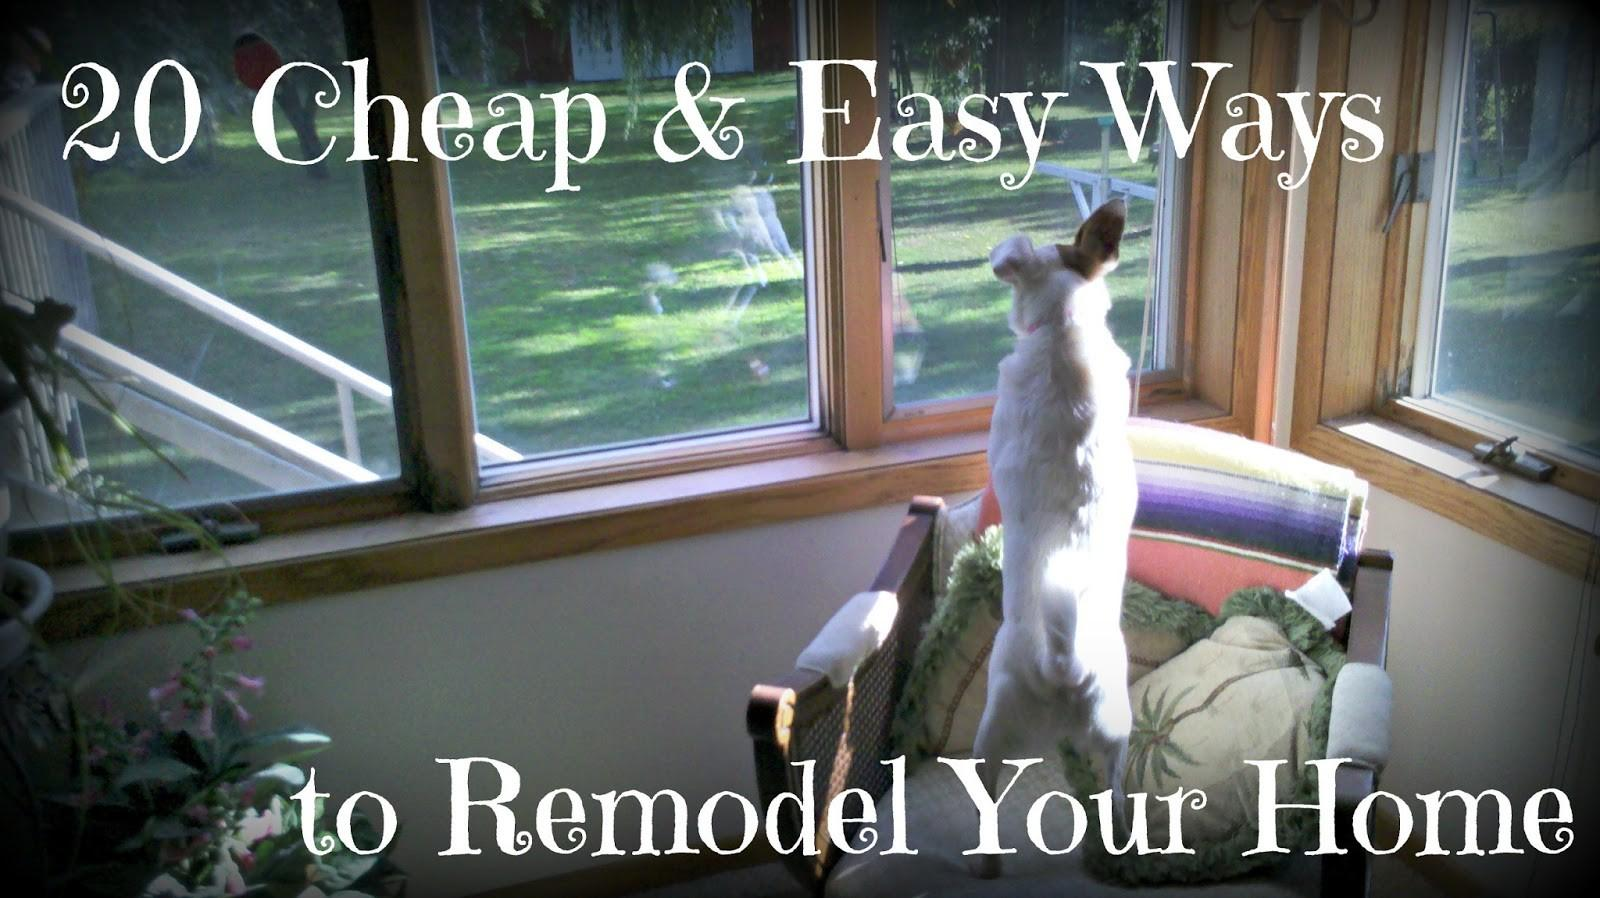 Cheapskate Life Cheap Easy Ways Remodel Your